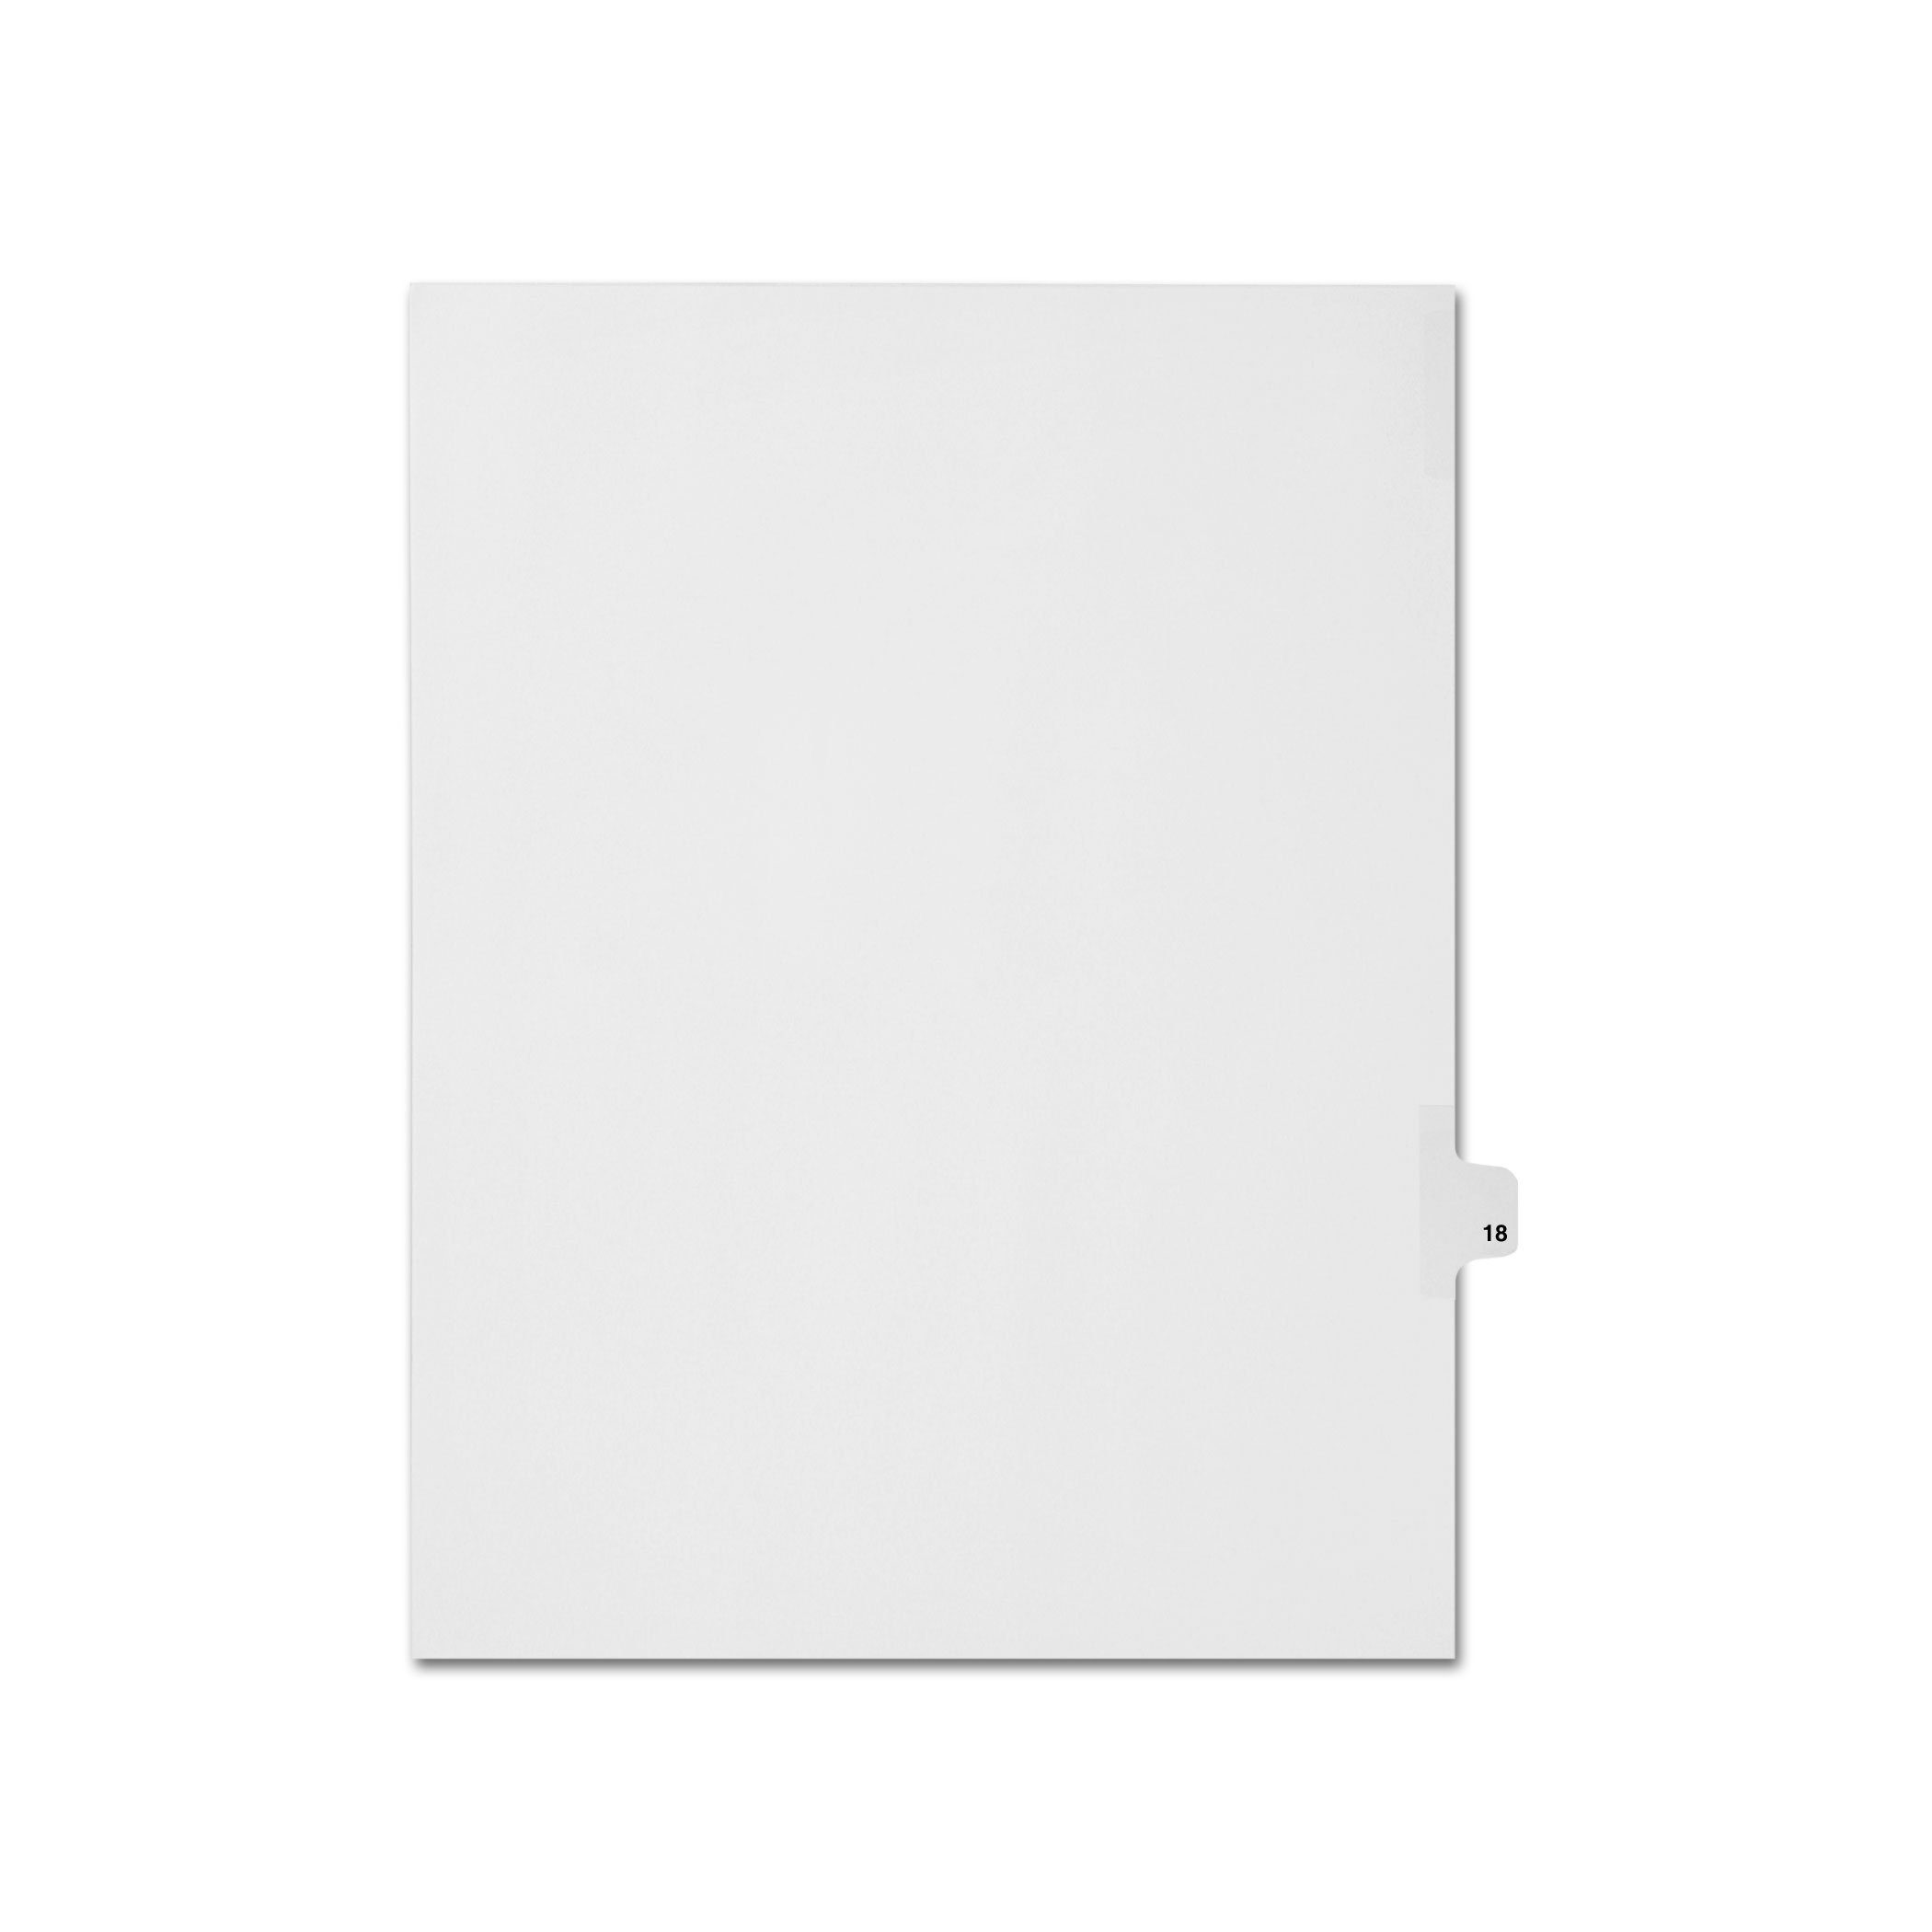 AMZfiling Individual Legal Index Tab Dividers, Compatible with Avery- Number 18, Letter Size, White, Side Tabs, Position 18 (25 Sheets/pkg)